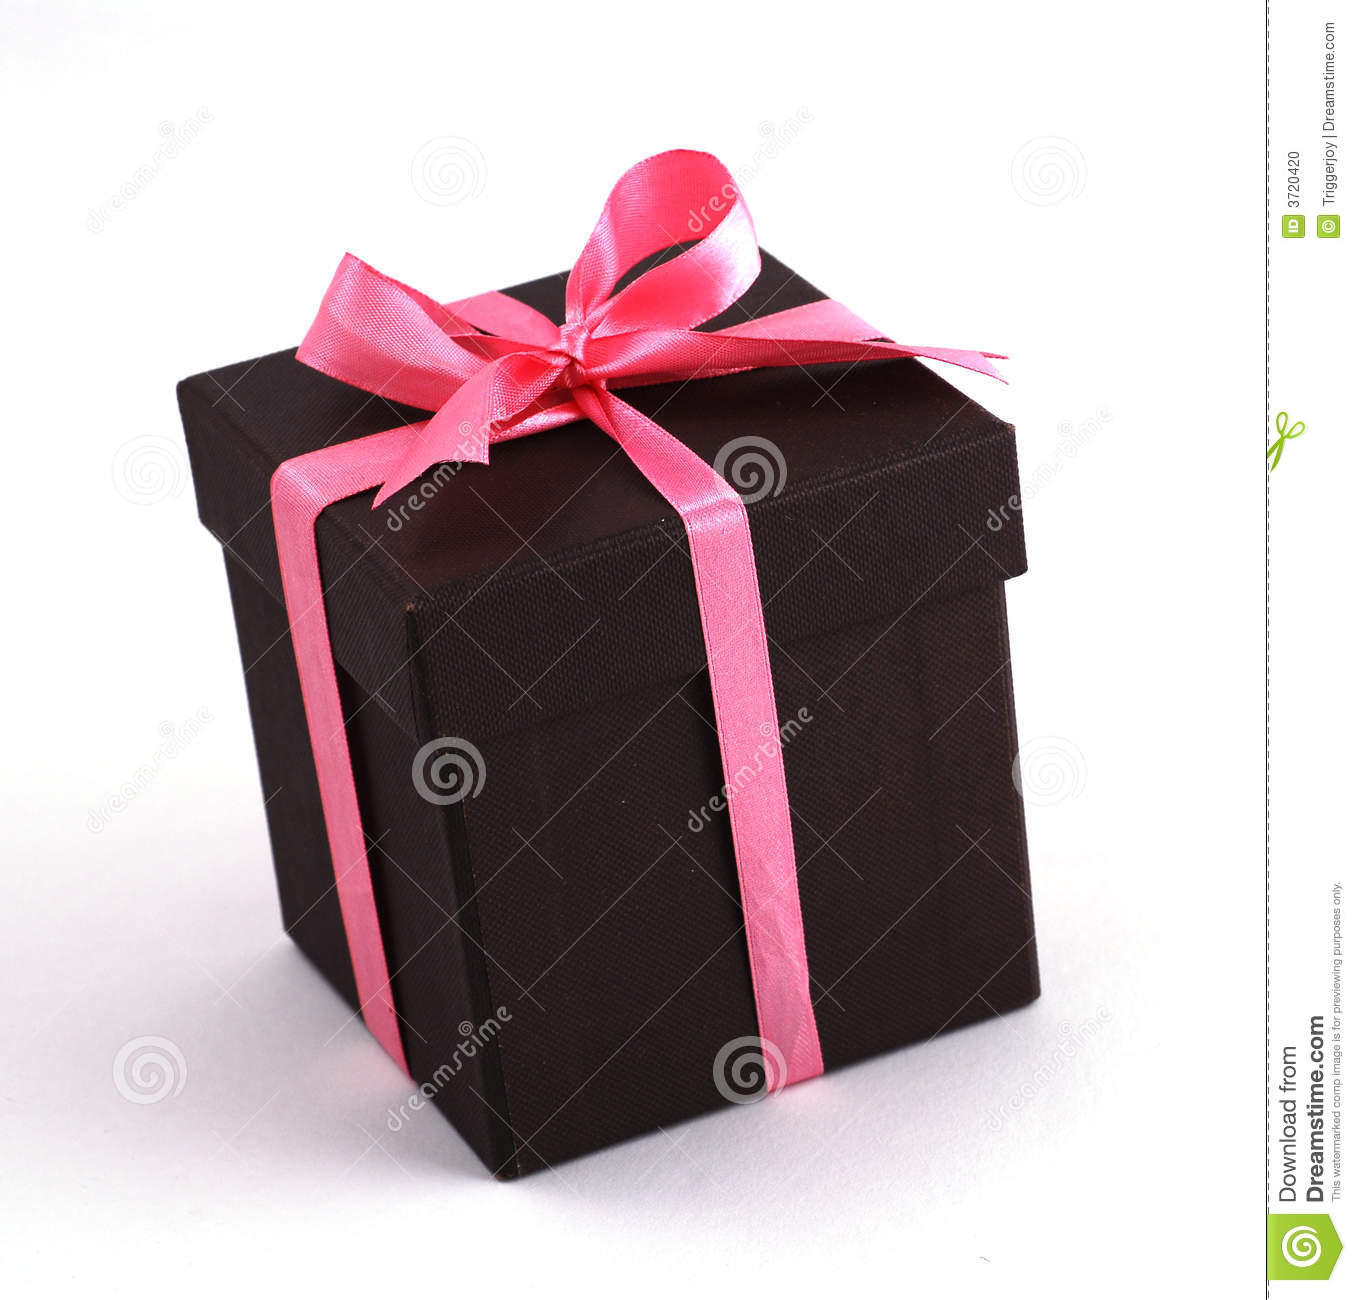 Gift Box with Pink ribbons